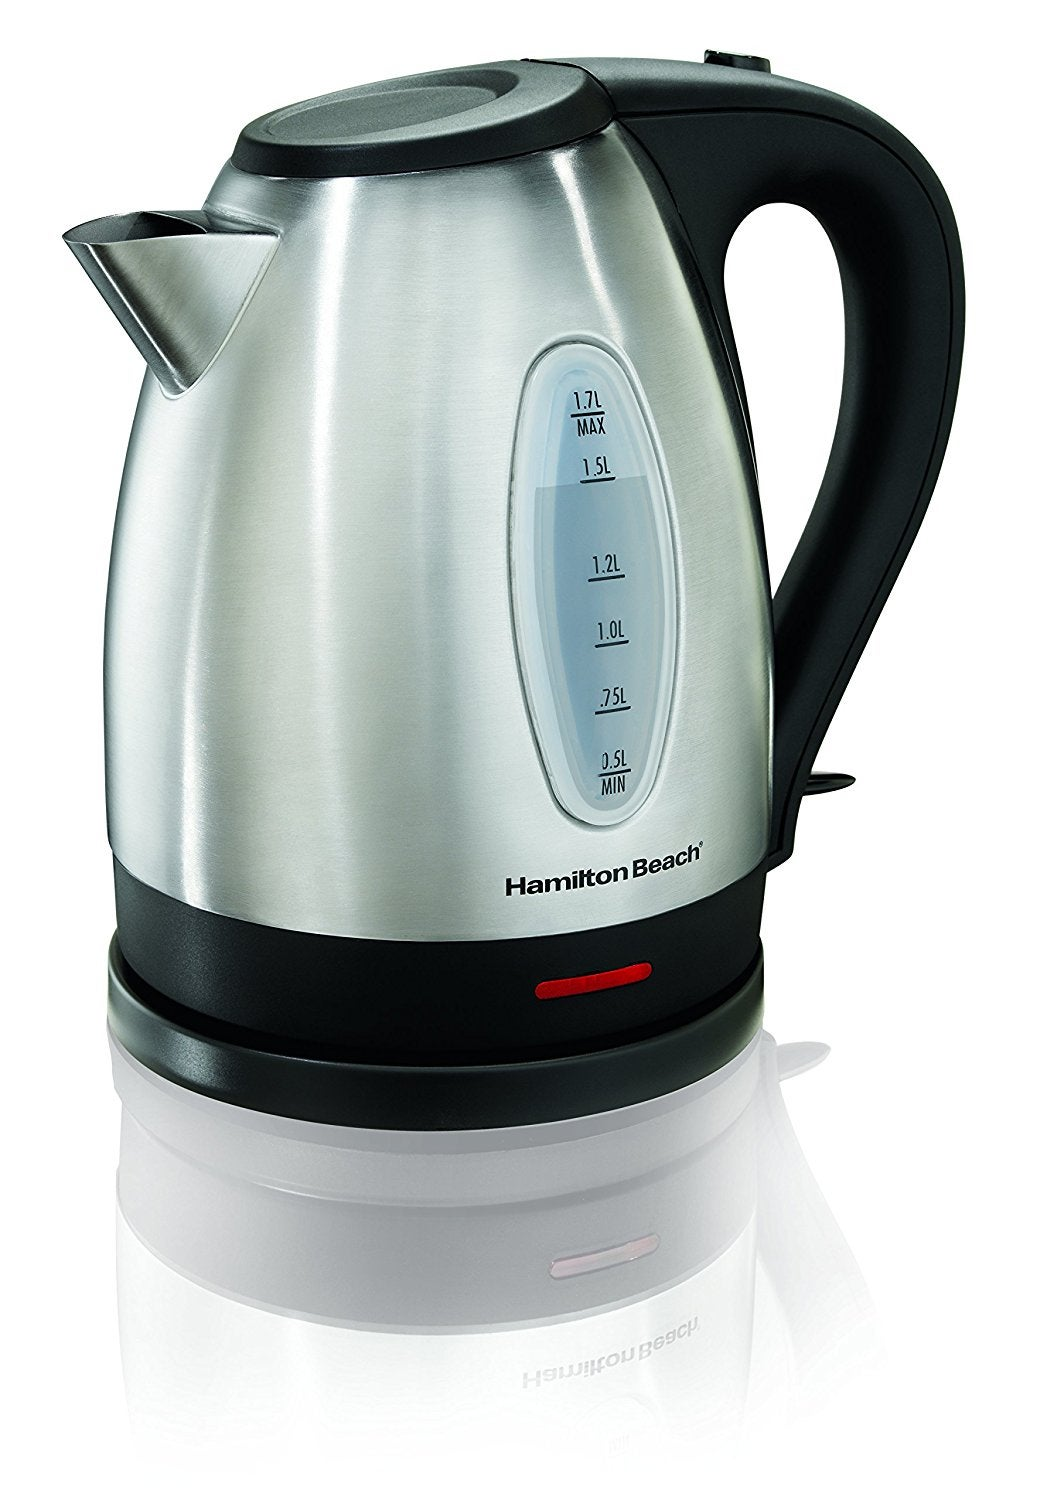 Hamilton Beach 40880 Stainless Steel 1.7 Liter Electric Kettle